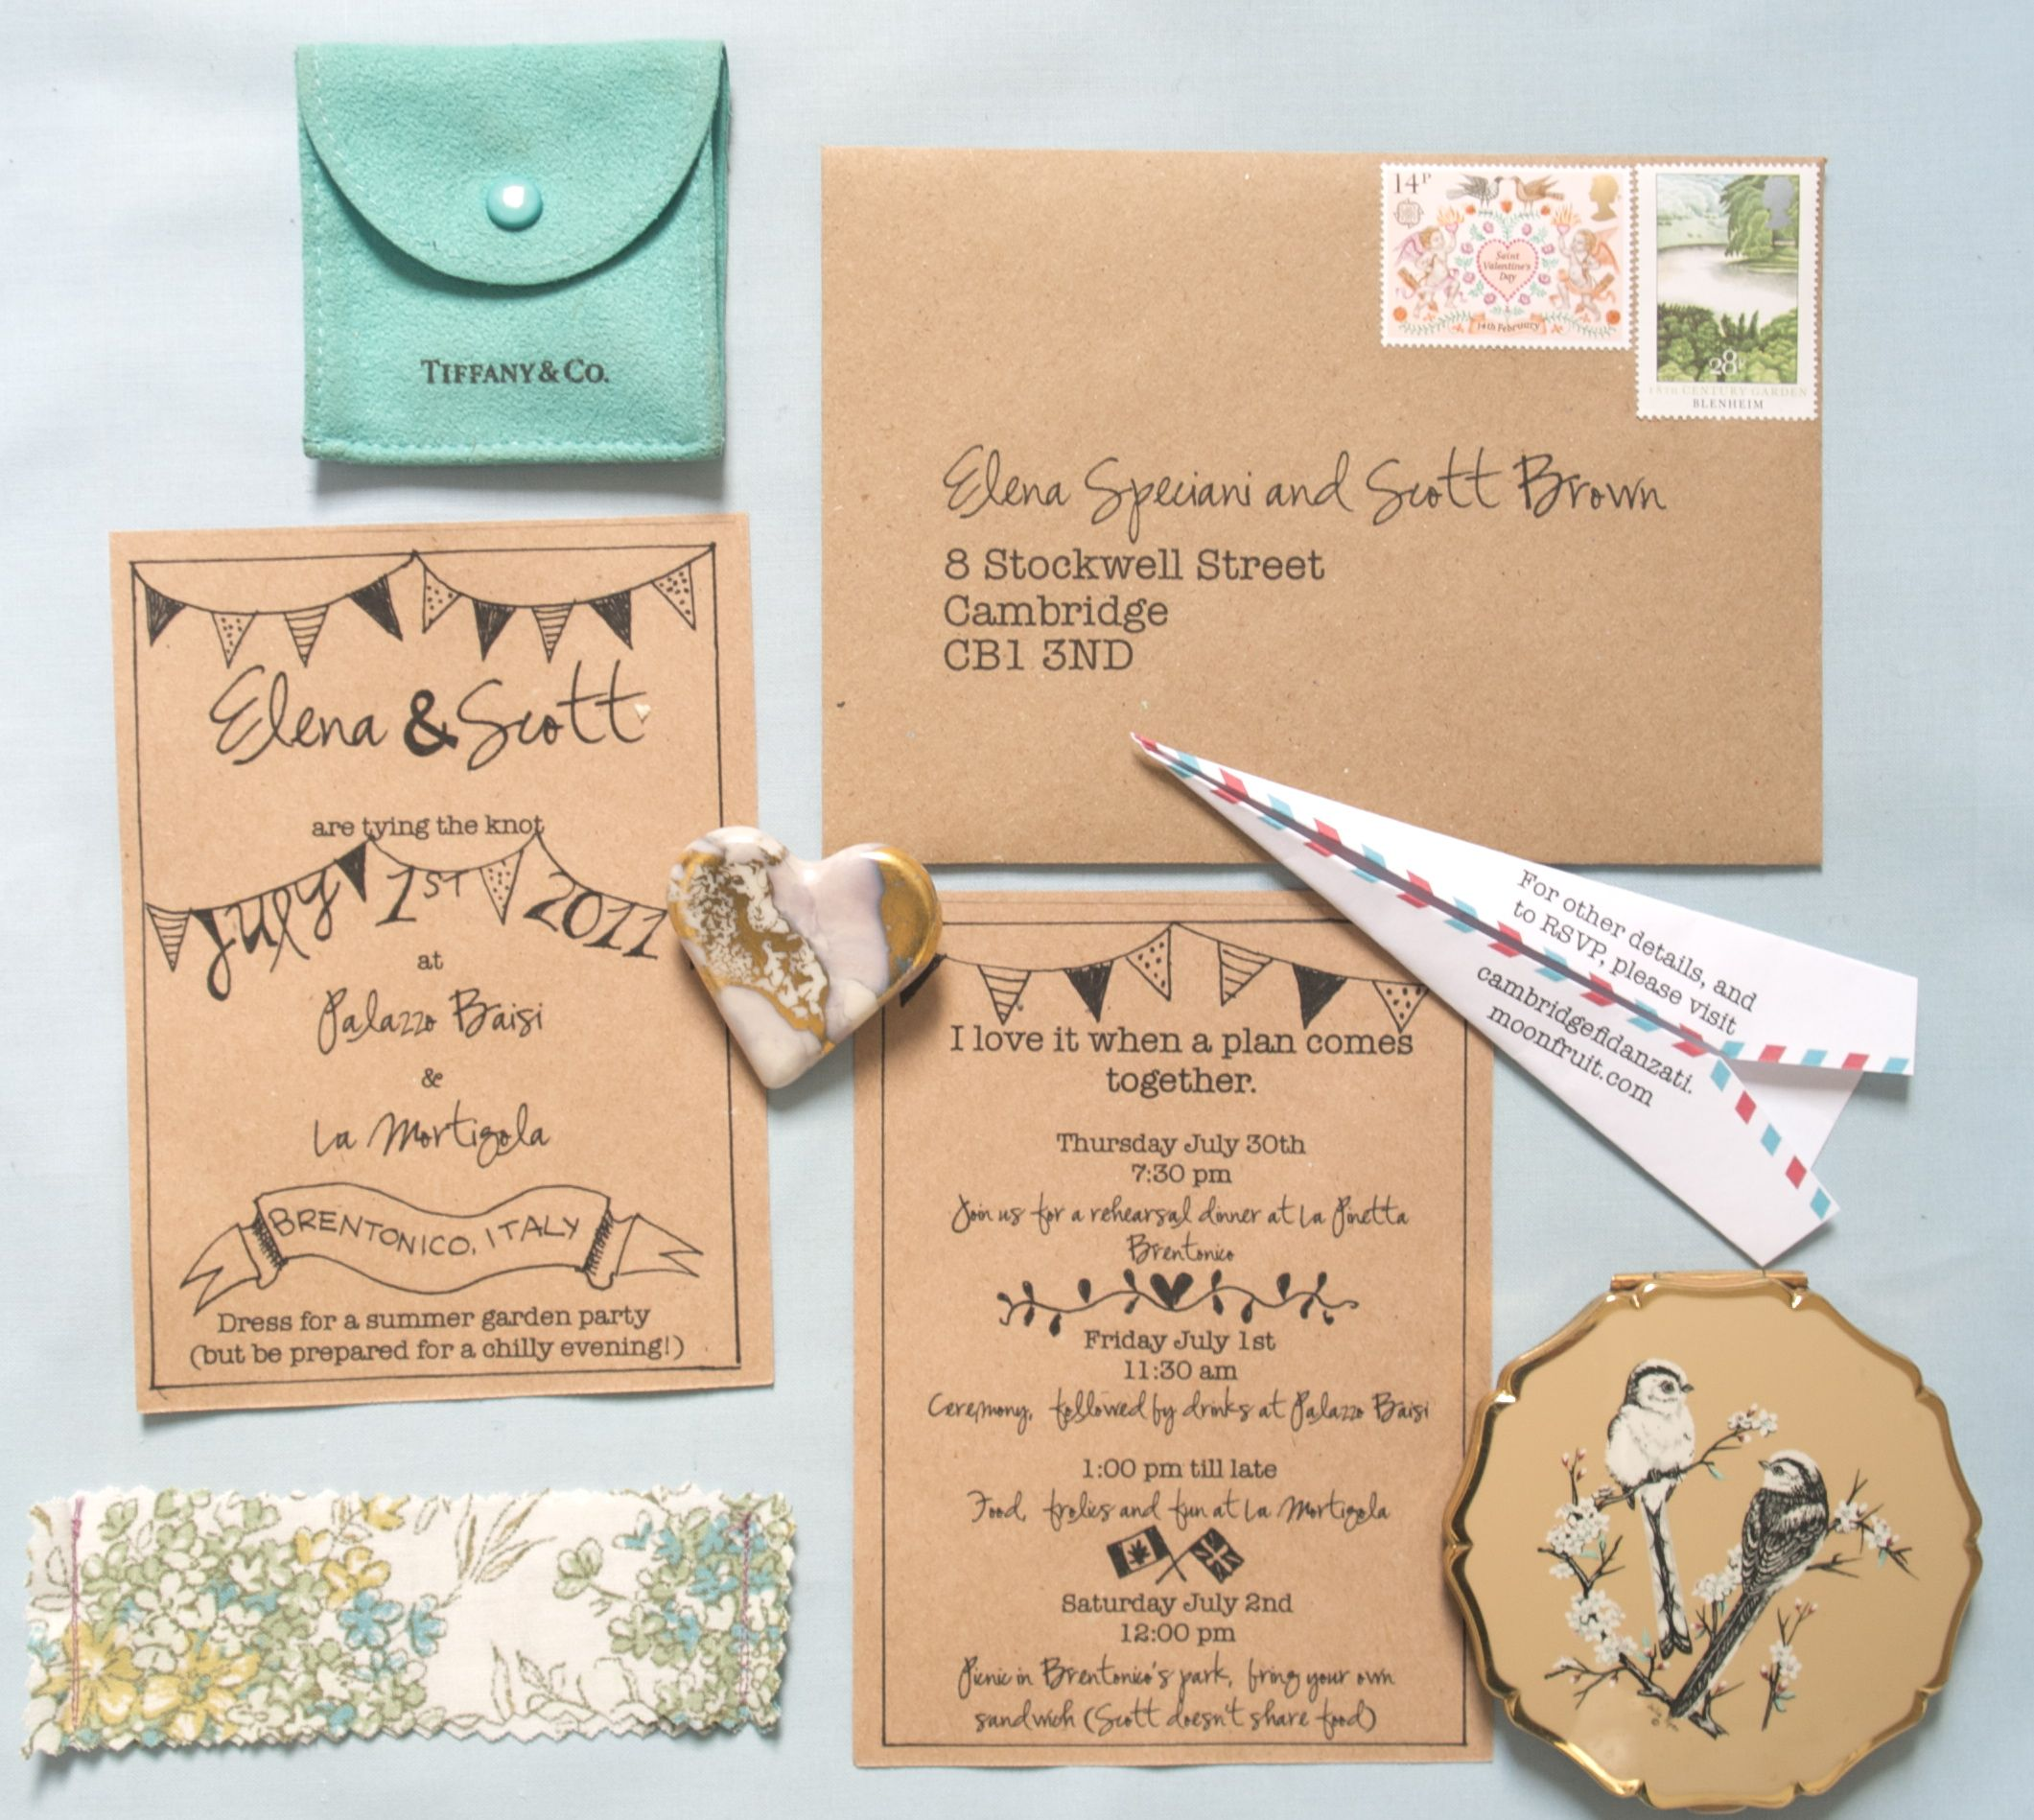 Wedding Invitations Diy Ideas: Our Diy Invitation Using Kraft Paper And Vintage Fabric